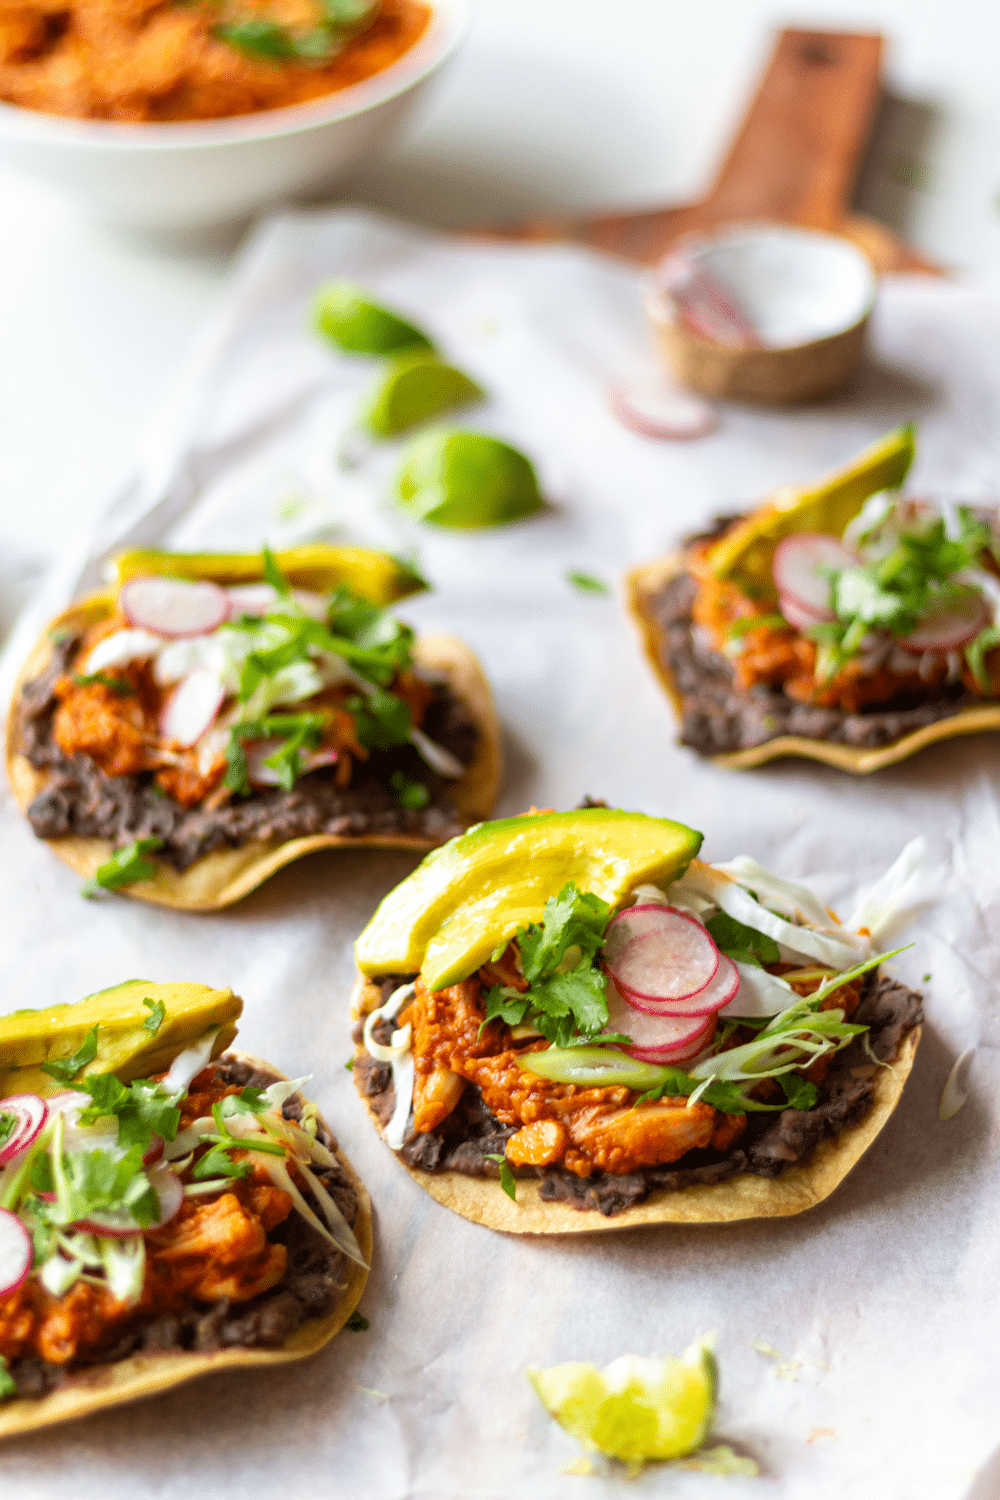 Jackfruit Tinga Tostadas make for an easy and delicious Mexican-inspired dinner! These tostadas are crispy, slathered with flavor-packed refried black beans, then topped with smoky, meaty pulled jackfruit. Quick, healthy, and flavor-packed, you'll love this Vegan Jackfruit Tinga in tostadas, tacos, and burritos!